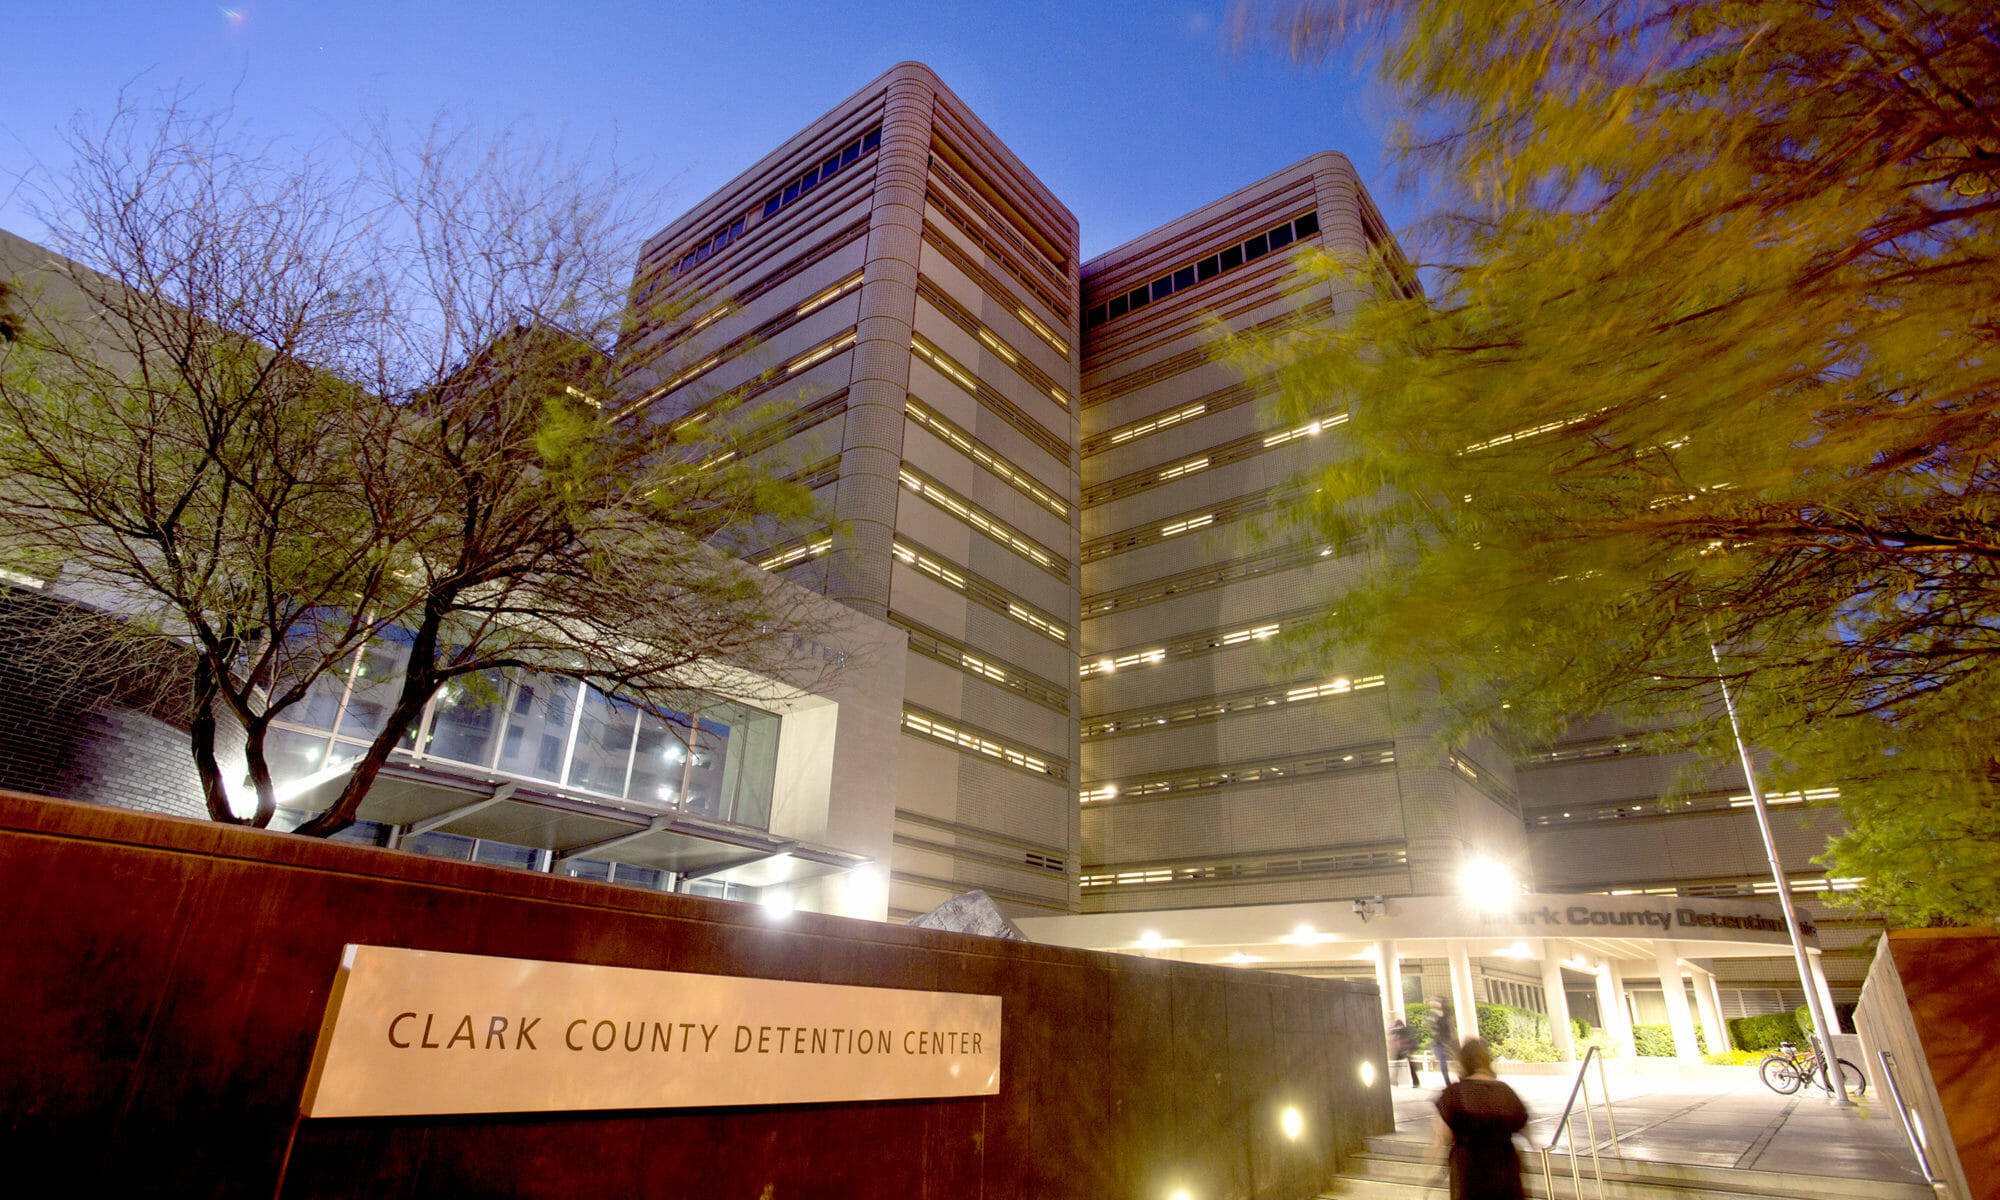 The Clark County Detention Center at dusk